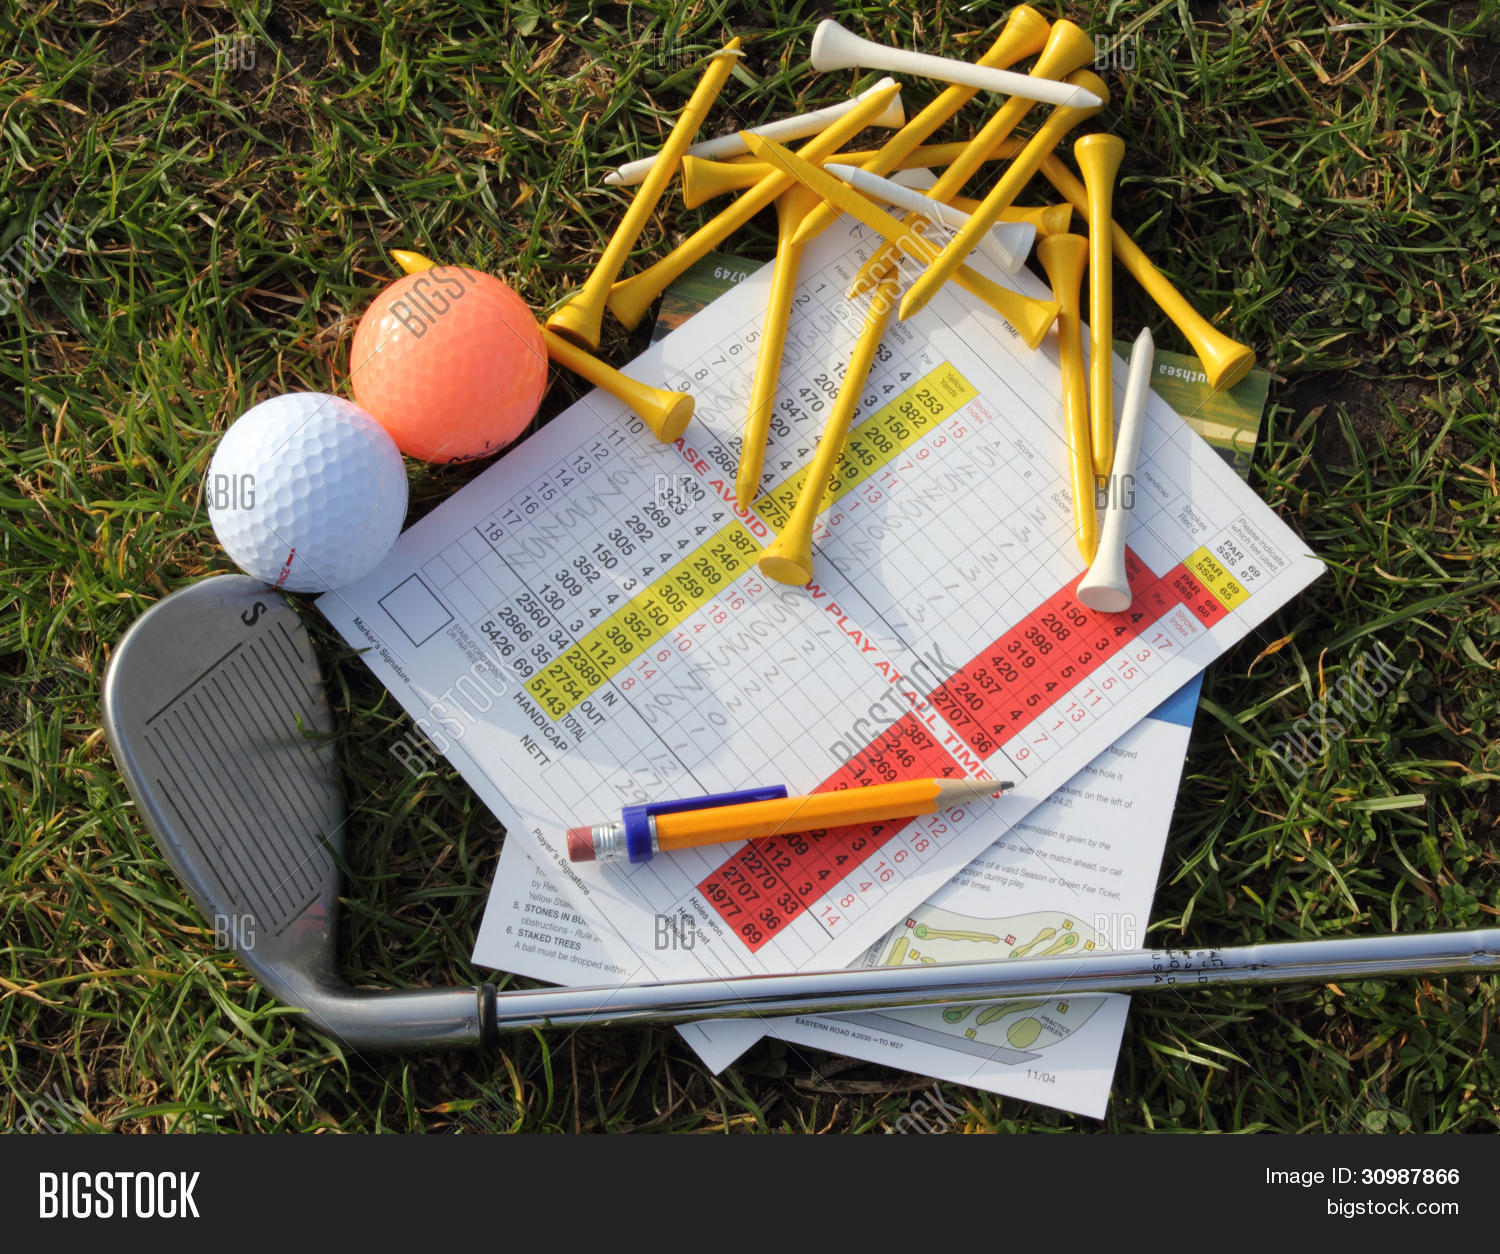 achieve,achievement,action,active,activity,aim,aiming,background,balance,ball,beautiful,begin,bet,birdie,bright,buggy,cart,challenge,close,club,compete,competition,competitive,concept,conceptual,country,course,cup,cut,day,design,detail,dimples,divot,drive,driven,driver,eagle,exercise,expense,expensive,fairway,fast,field,fit,fitness,flag,follw,fore,form,four,fourball,friendly,frustrate,frustrating,frustration,fun,gamble,game,golf,golfball,golf cart,golfcourse,golfer,golfing,grass,green,greenery,grooves,group,handicap,hard,hit,hobby,hole,holiday,horizon,inches,invitation,invitational,iron,lawn,layout,leisure,life,lifestyle,links,long,natural,nature,outdoors,par,peg,pencil,pitch,pitching,play,player,playing,practice,putt,putter,ready,recreation,relax,relaxation,relaxed,resort,retire,retirement,rough,round,sandwedge,scenery,scenic,score,scorecard,senior,shadow,skill,speed,sports,start,success,successful,summer,sweet,swing,tee,vacation,wager,walk,wedge,white,wood